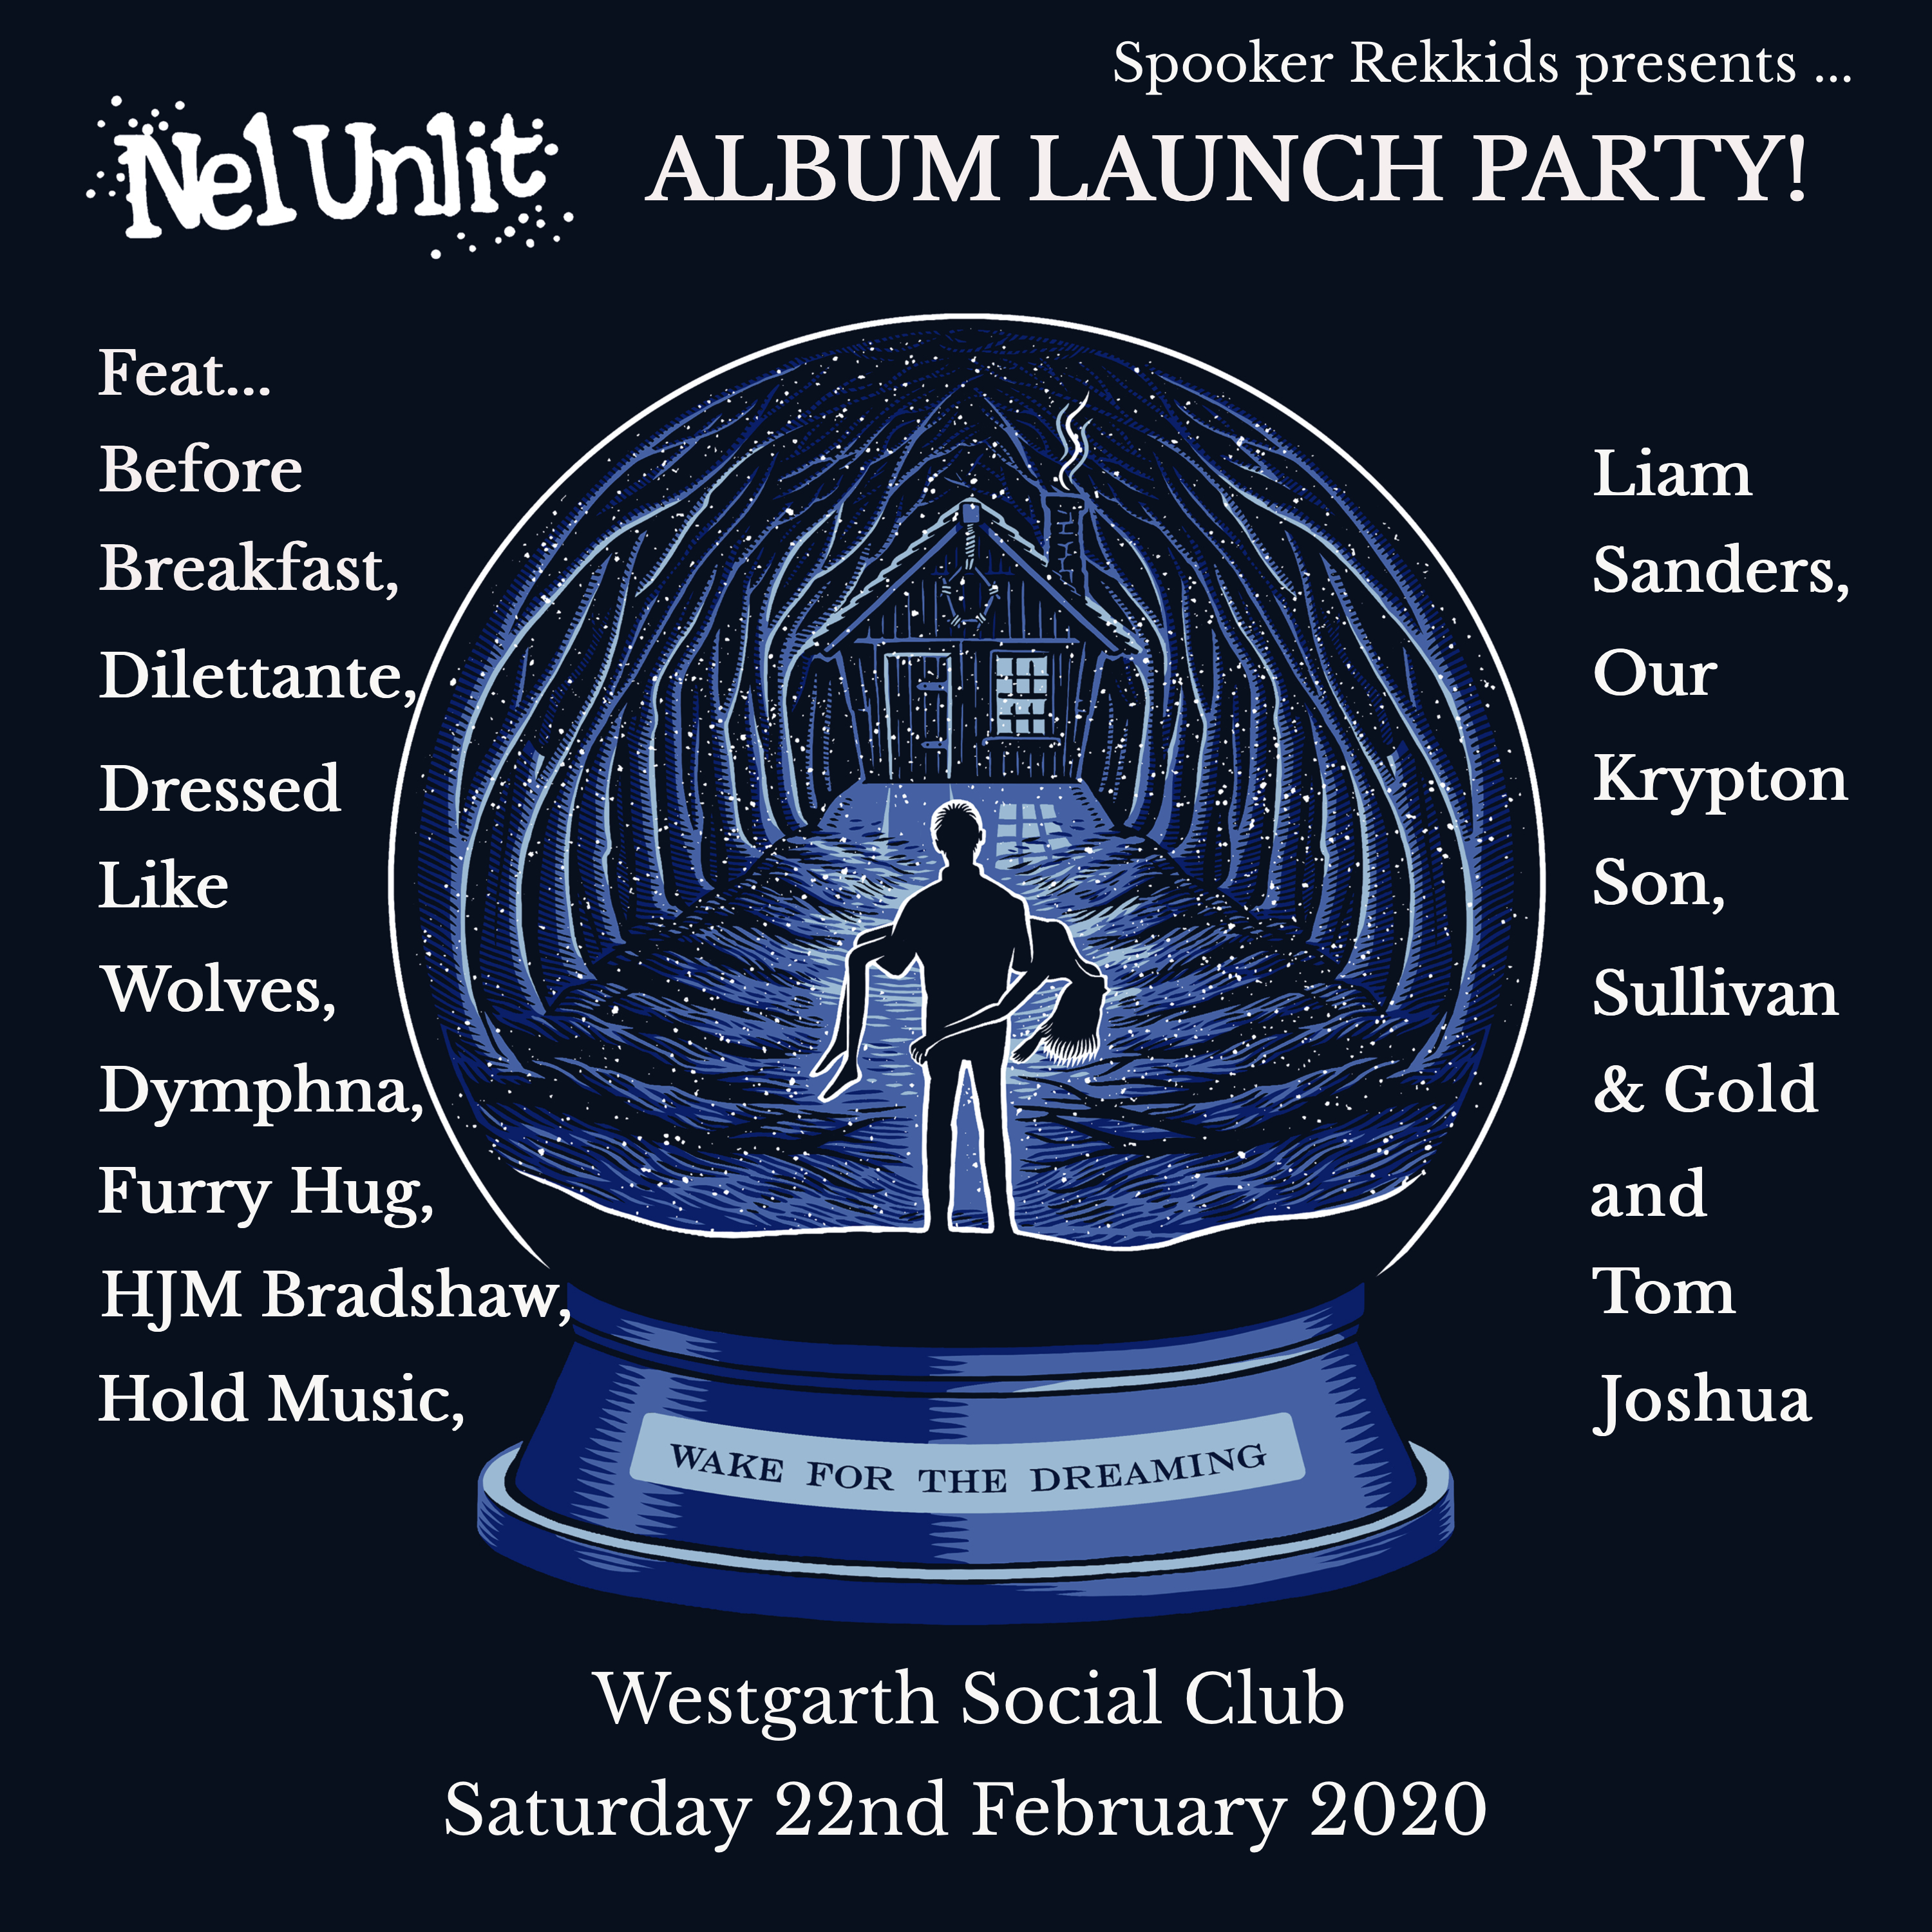 Nel final album launch party poster